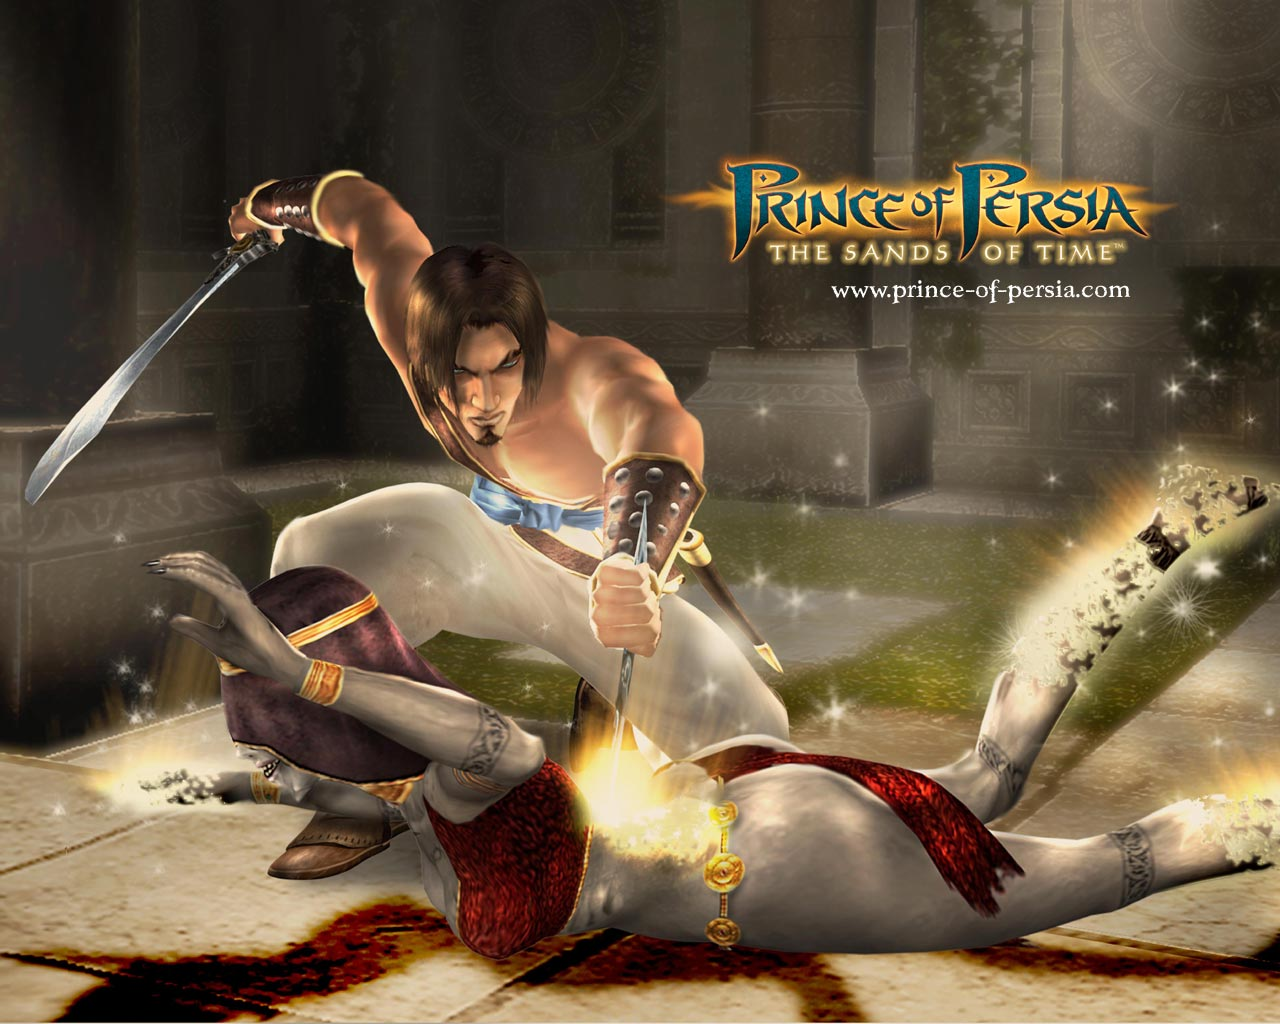 Prince of persia 2008 nude mod xxx girls